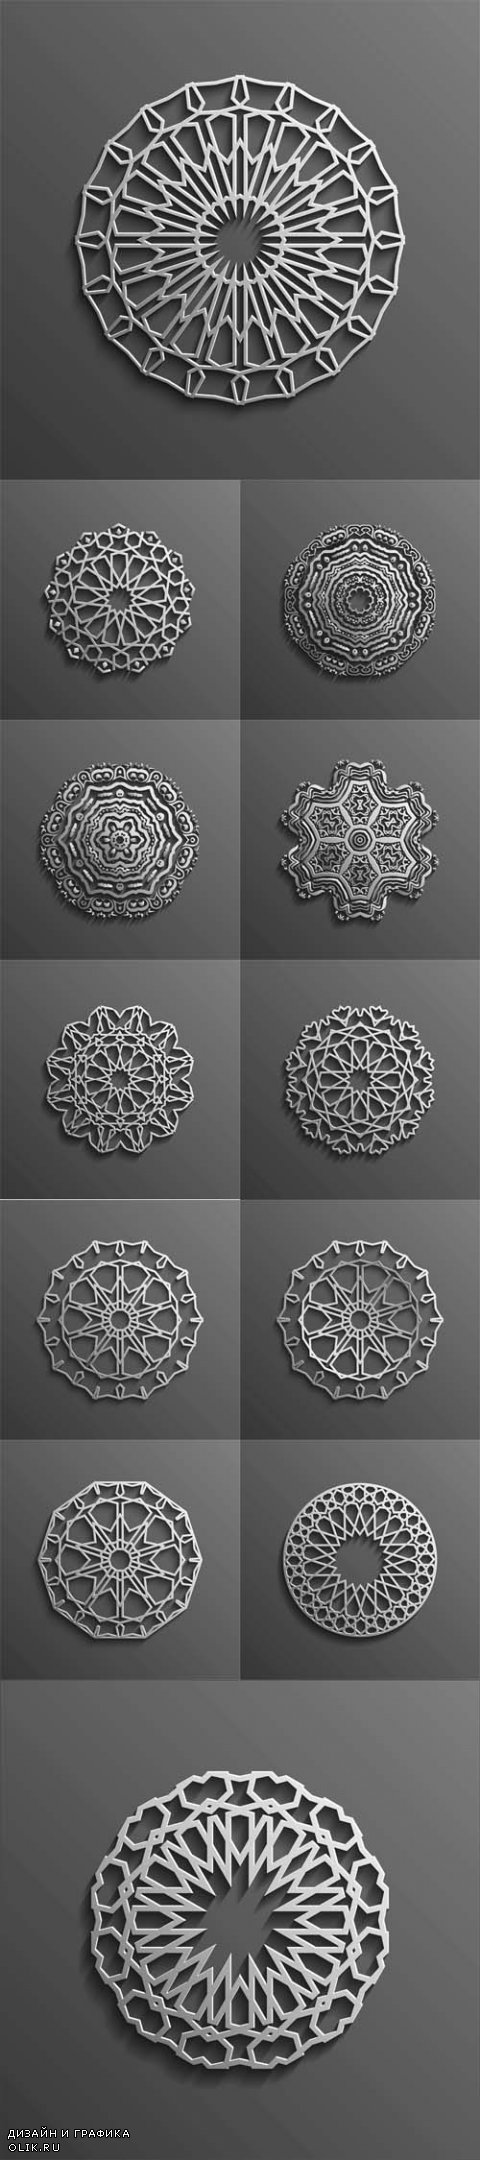 Vector Islamic 3d on dark mandala round ornament background architectural muslim texture design